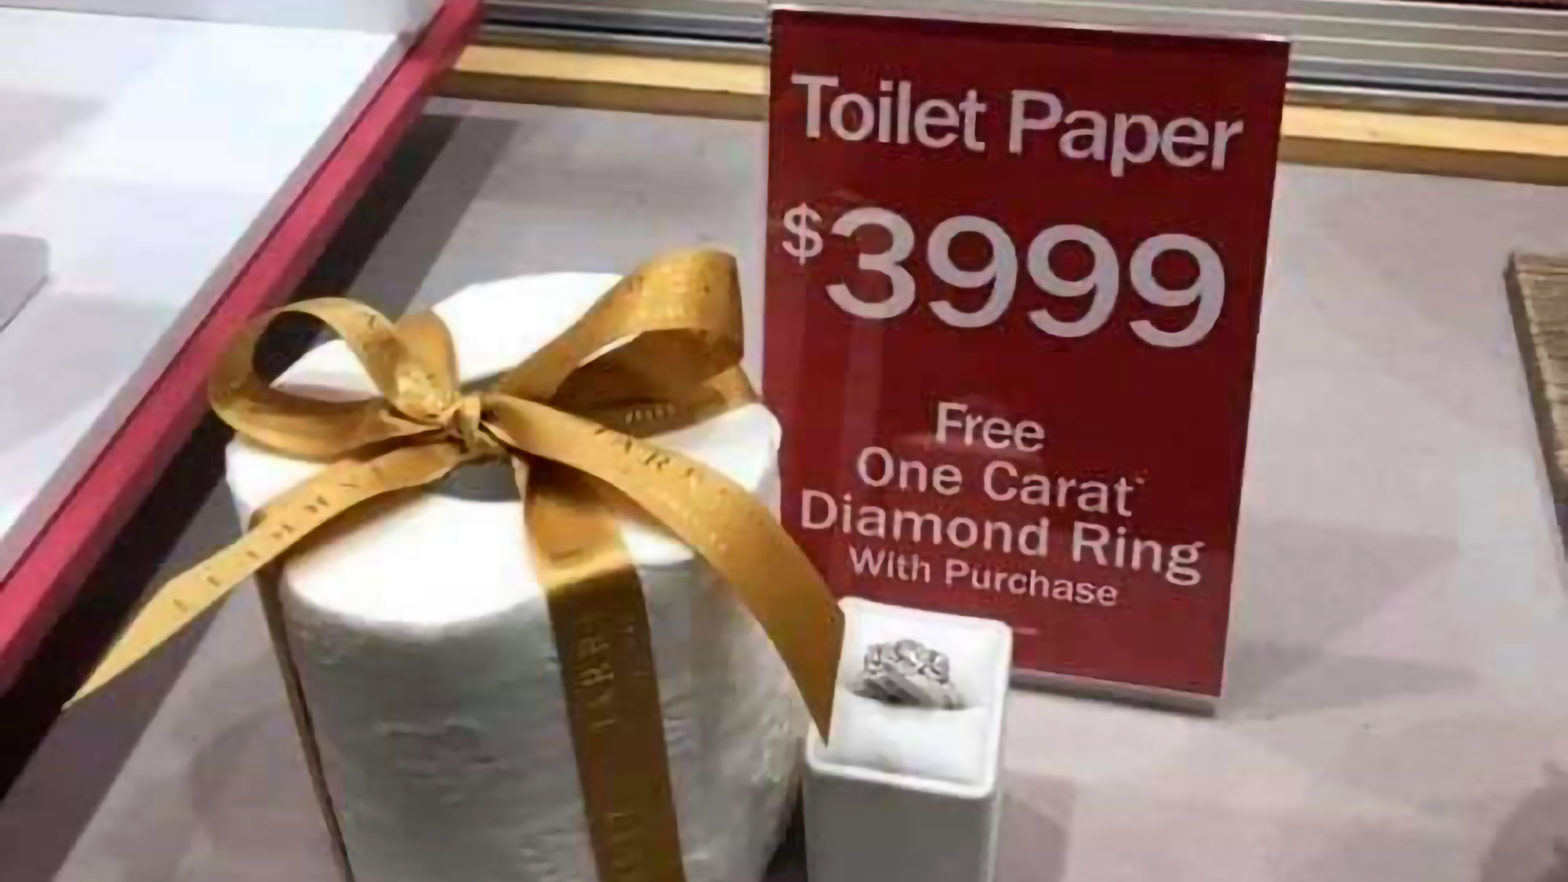 Jared Jewelers Las Vegas $4000 Toilet Paper